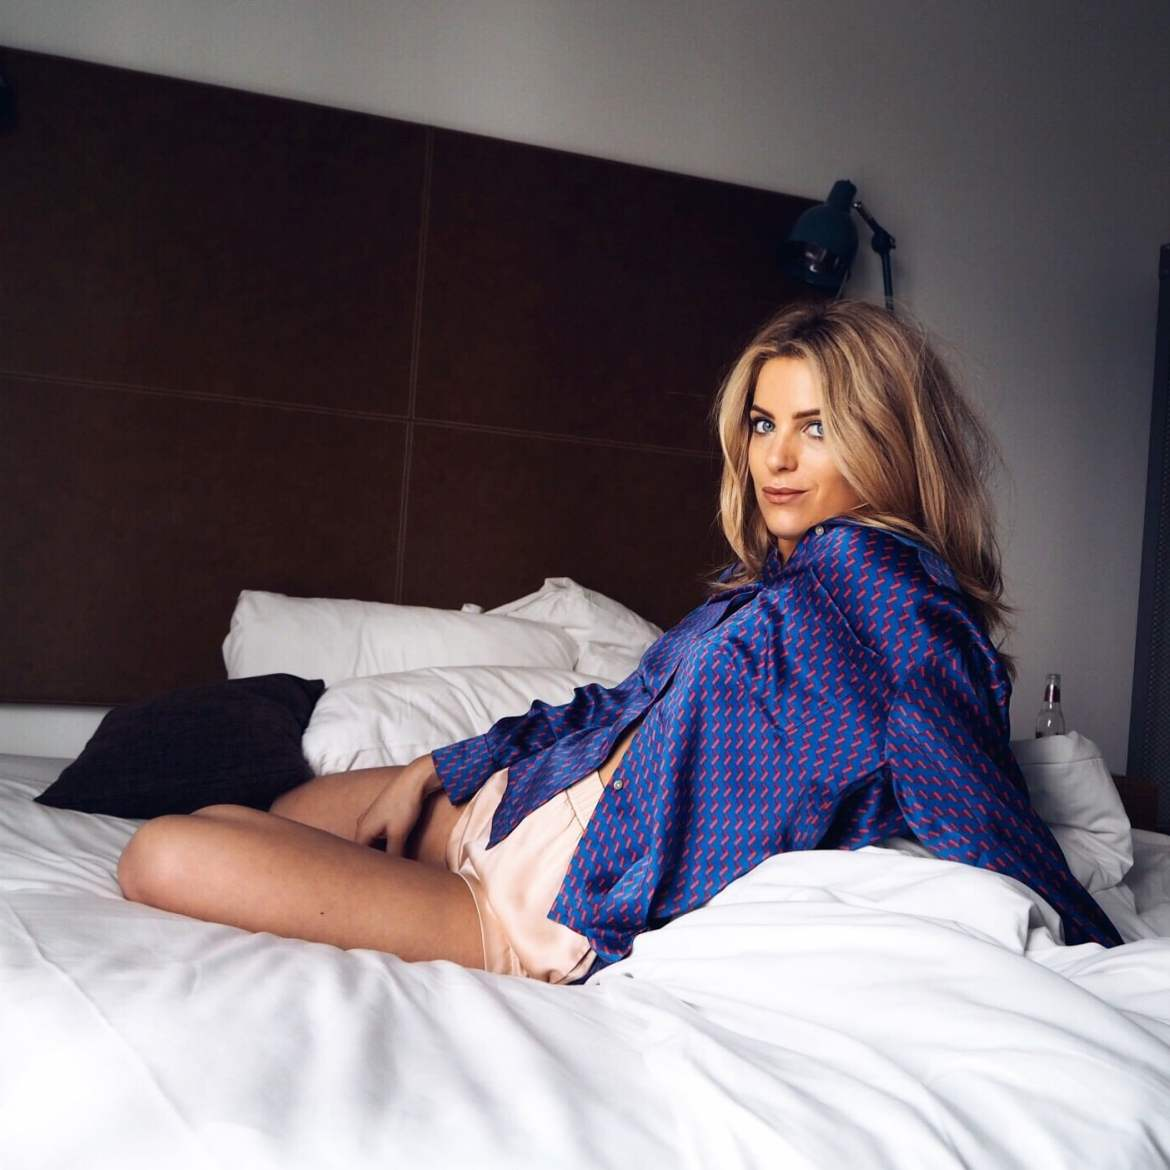 Olivia Cox, Staycation, London, Travel, Travel Blogger, Where to stay, home from home, second home, tv presenter, blonde, bed head